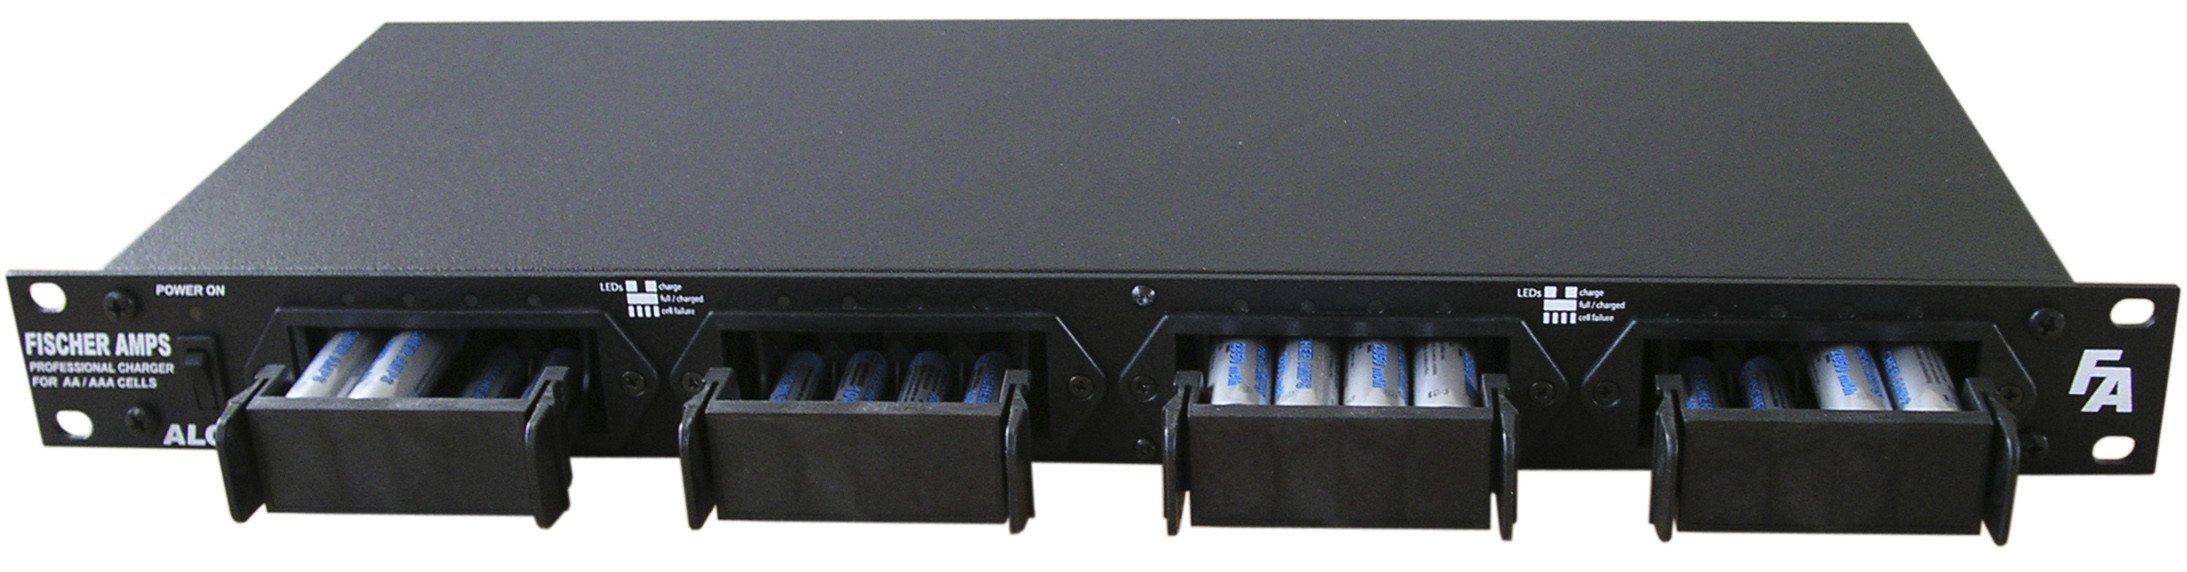 Fischer Amps ALC 161 Rackmount Battery Charger  for 16 AA/AAA Rechargeable Batteries